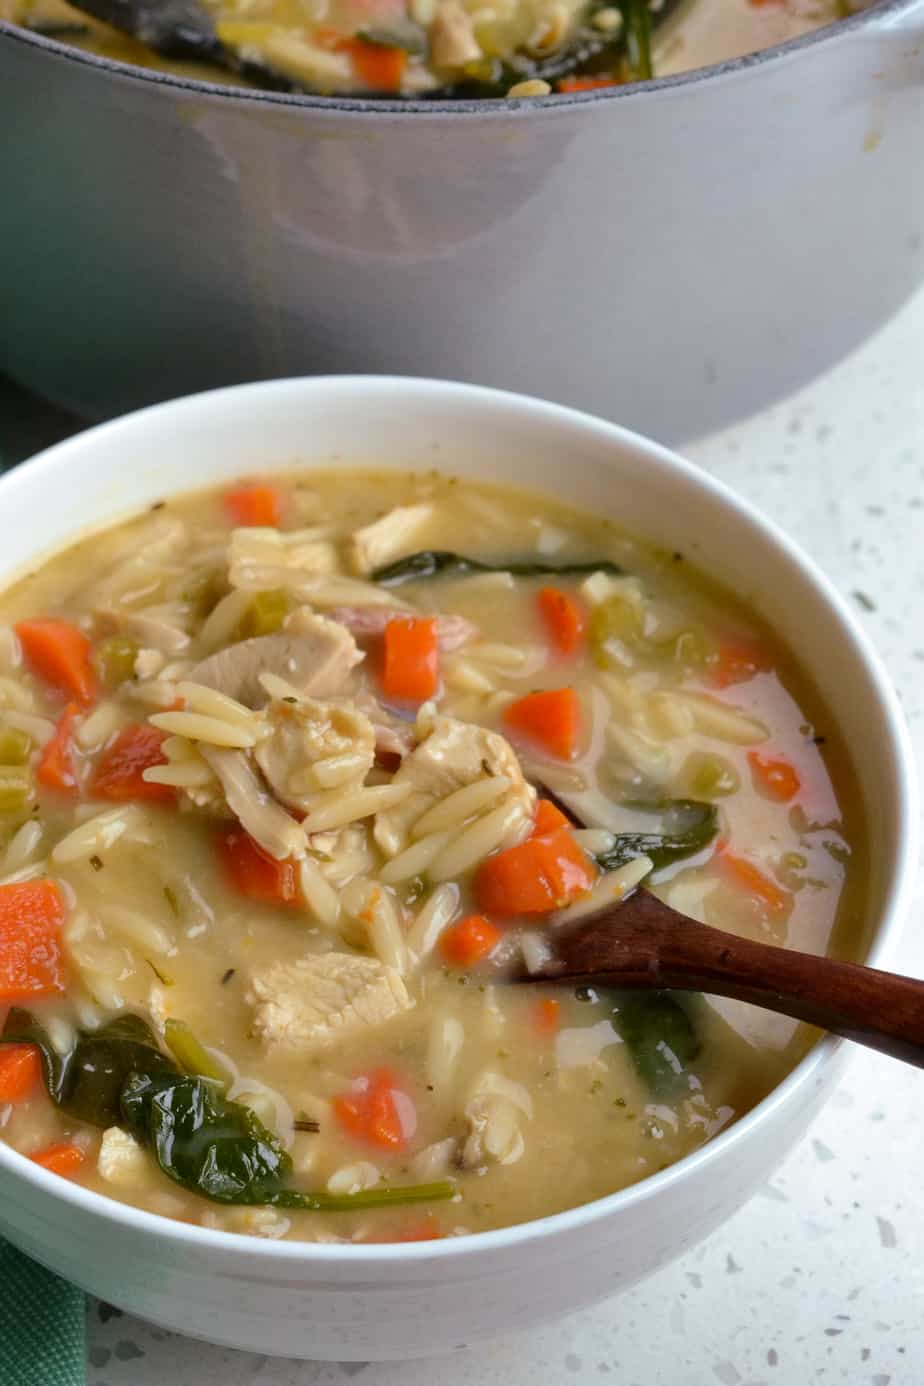 Chicken vegetable soup with orzo, spinach and lemon juice.